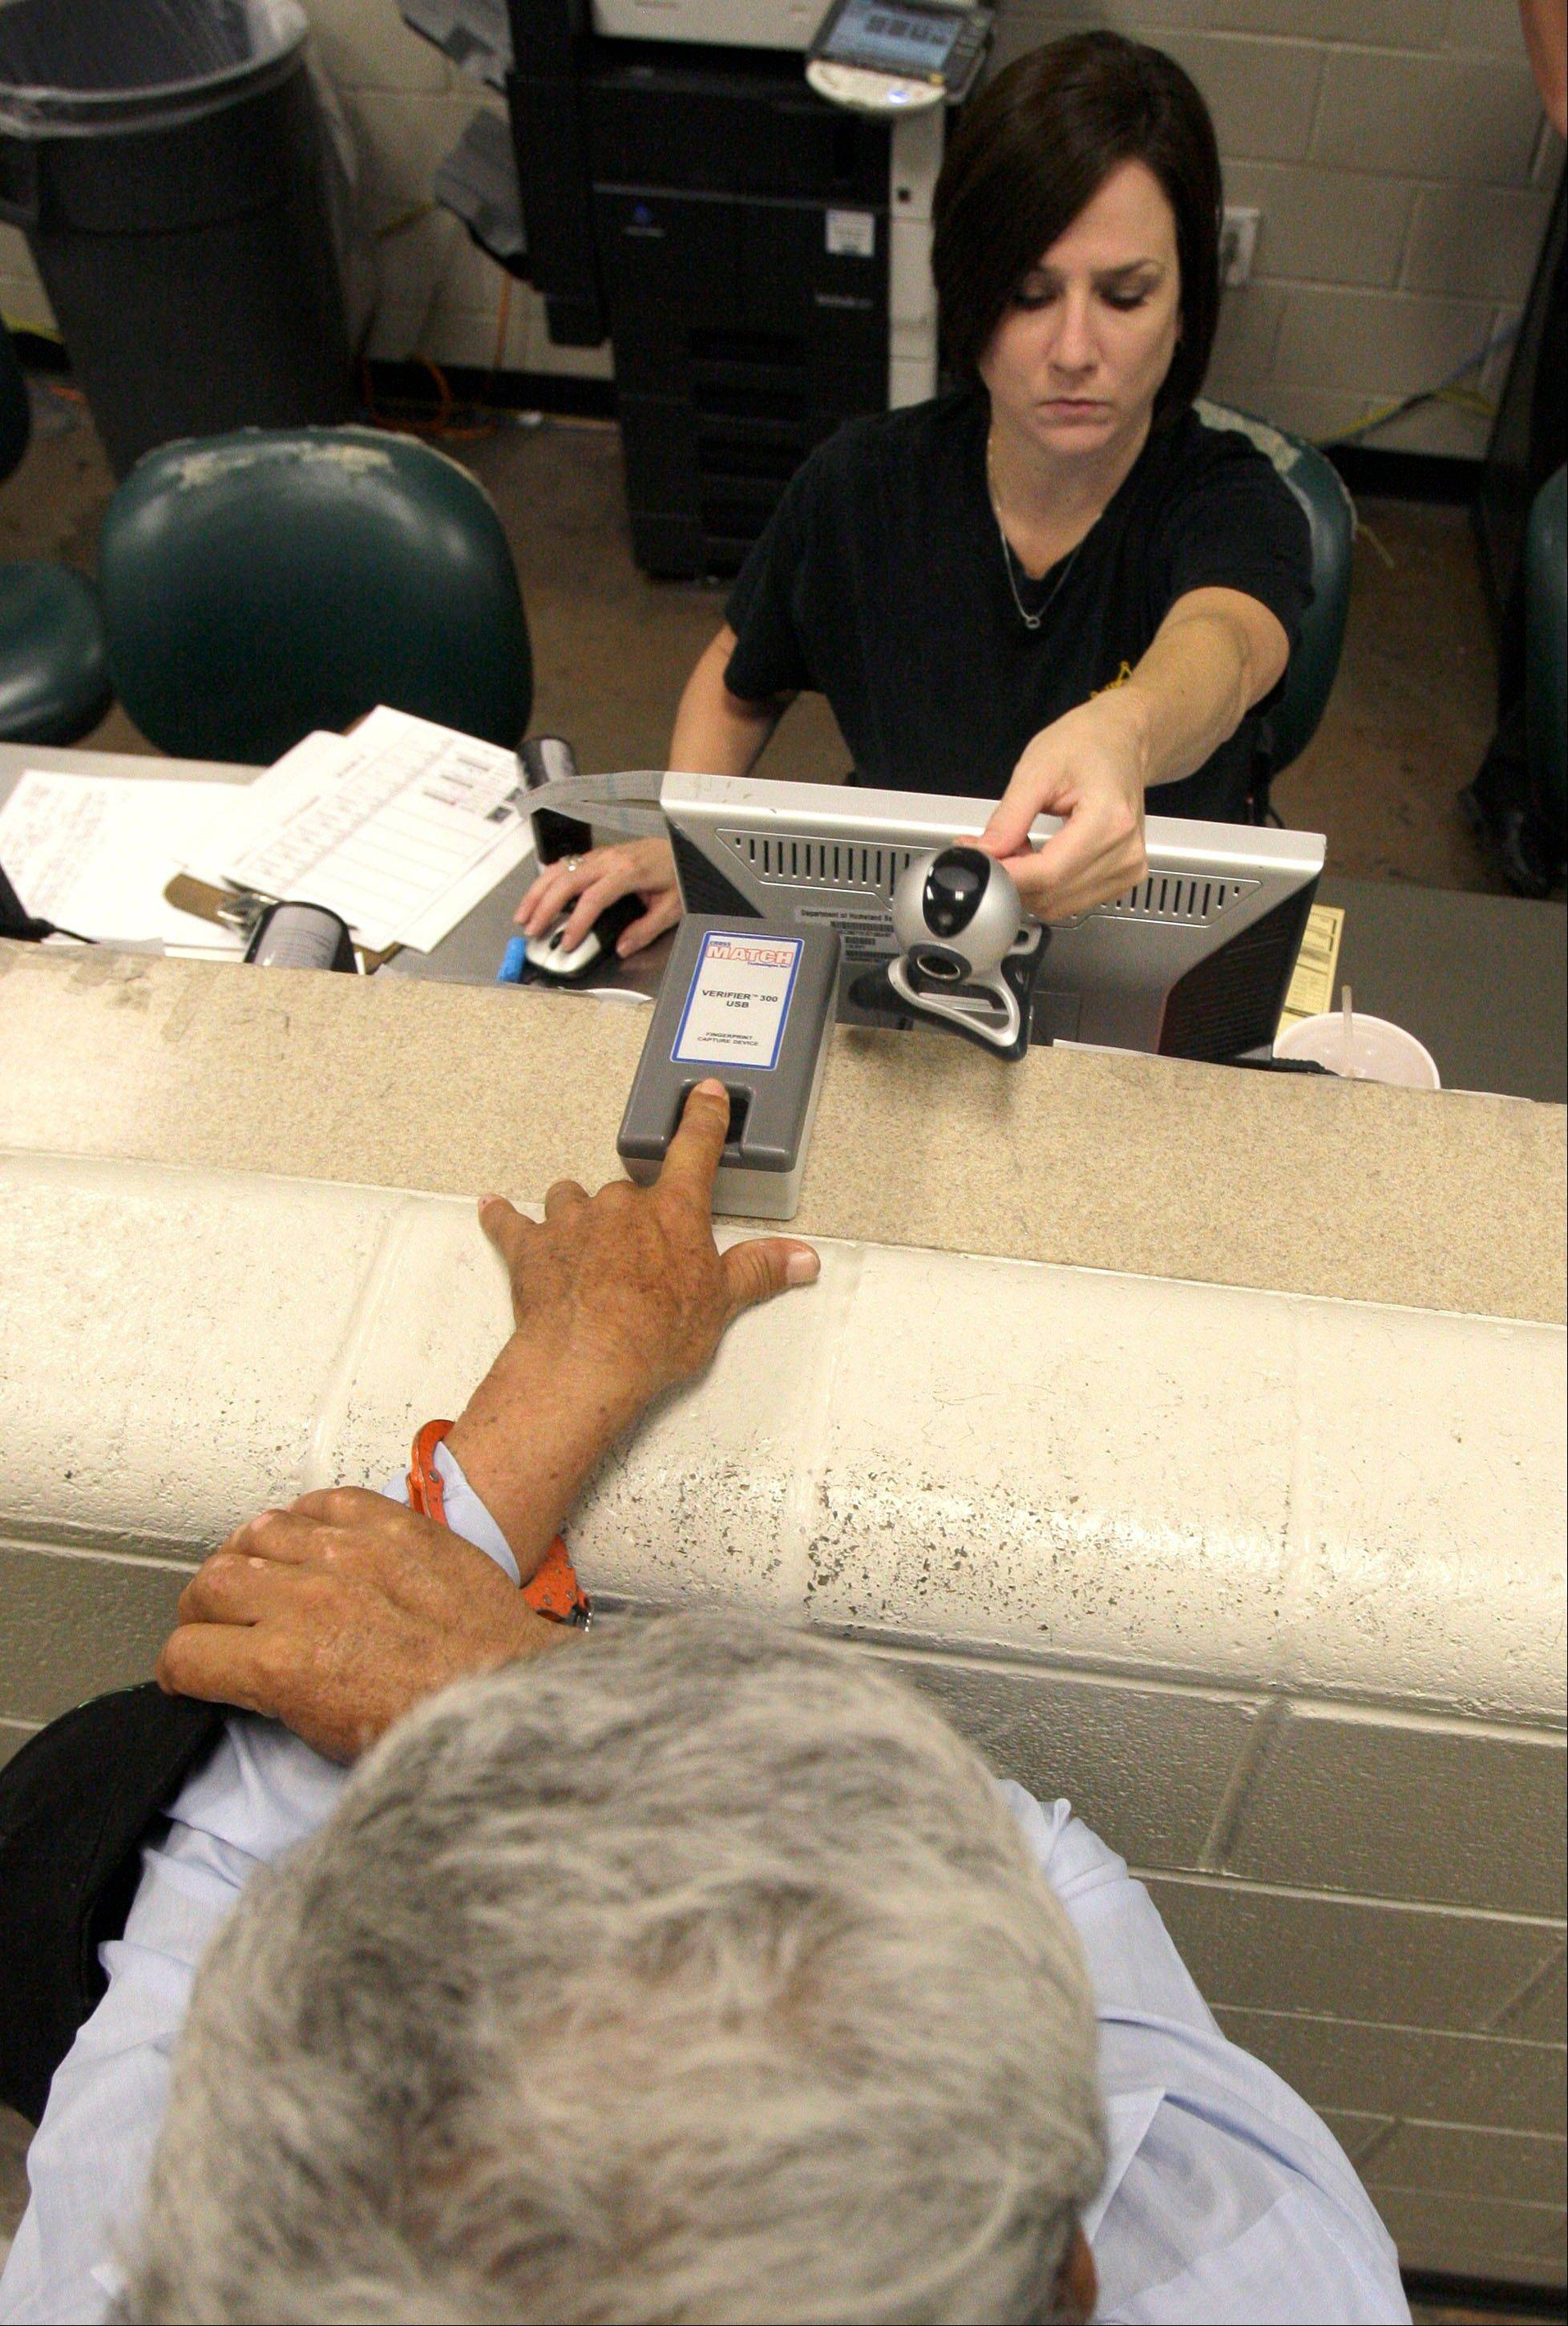 A suspect, bottom, is photographed and checked for his immigration status with a fingerprint scanner by a Maricopa County sheriff's detention officer last year in Phoenix.